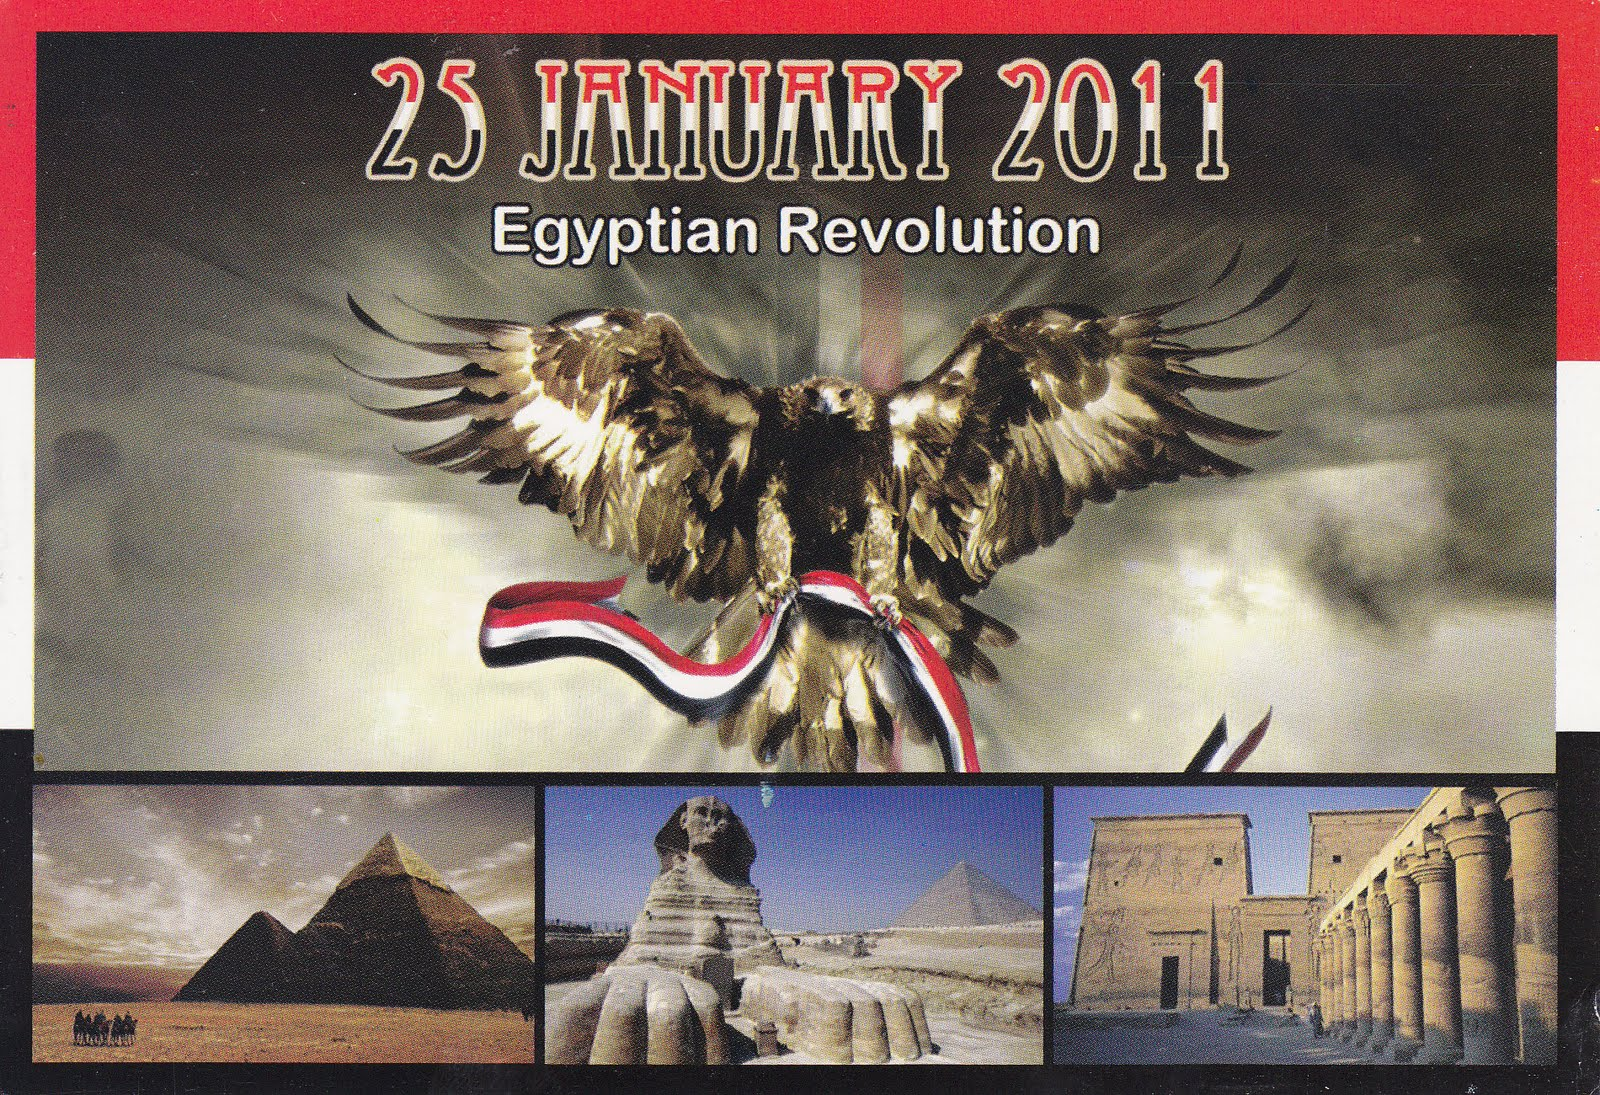 english essay about egyptian revolution Egyptian revolution essay  egyptian revolution: age of the renaissance as a response to the long reigning dictatorship of the former president of egypt, hosni mubarak, the egyptian revolution began on the 25th of january 2011 in a form of peaceful civil resistance involving non-violent marches, protests, labor strikes, and acts of civil disobedience demanding mubarak's immediate resignation.